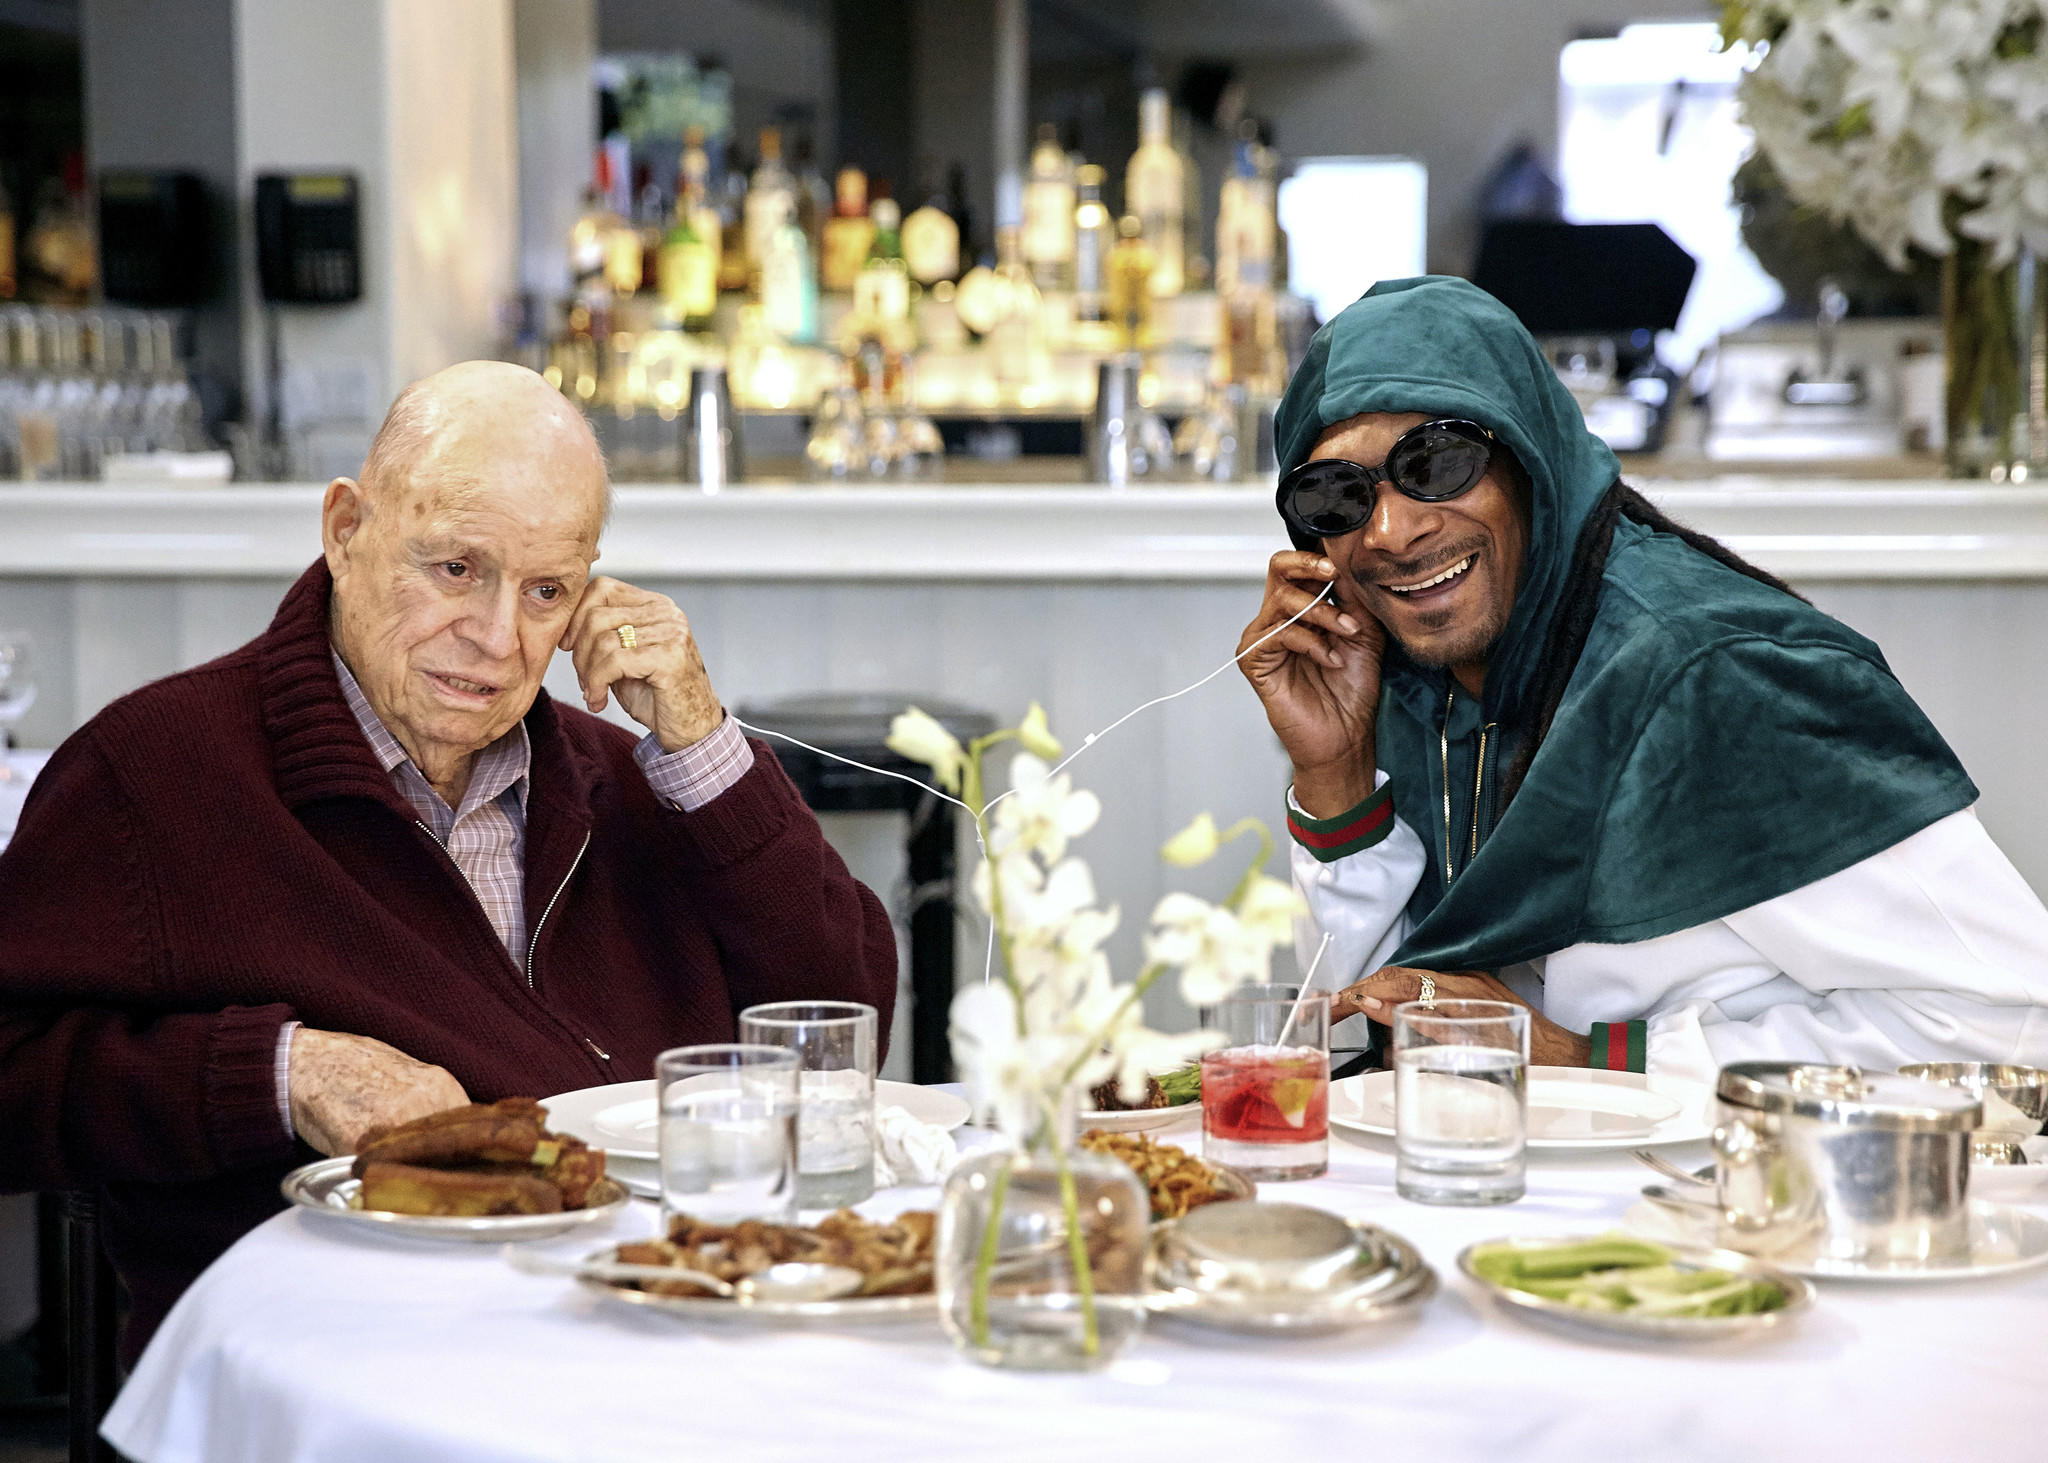 Don Rickles dining with Snoop Dogg? Watch 'Dinner With Don' online now